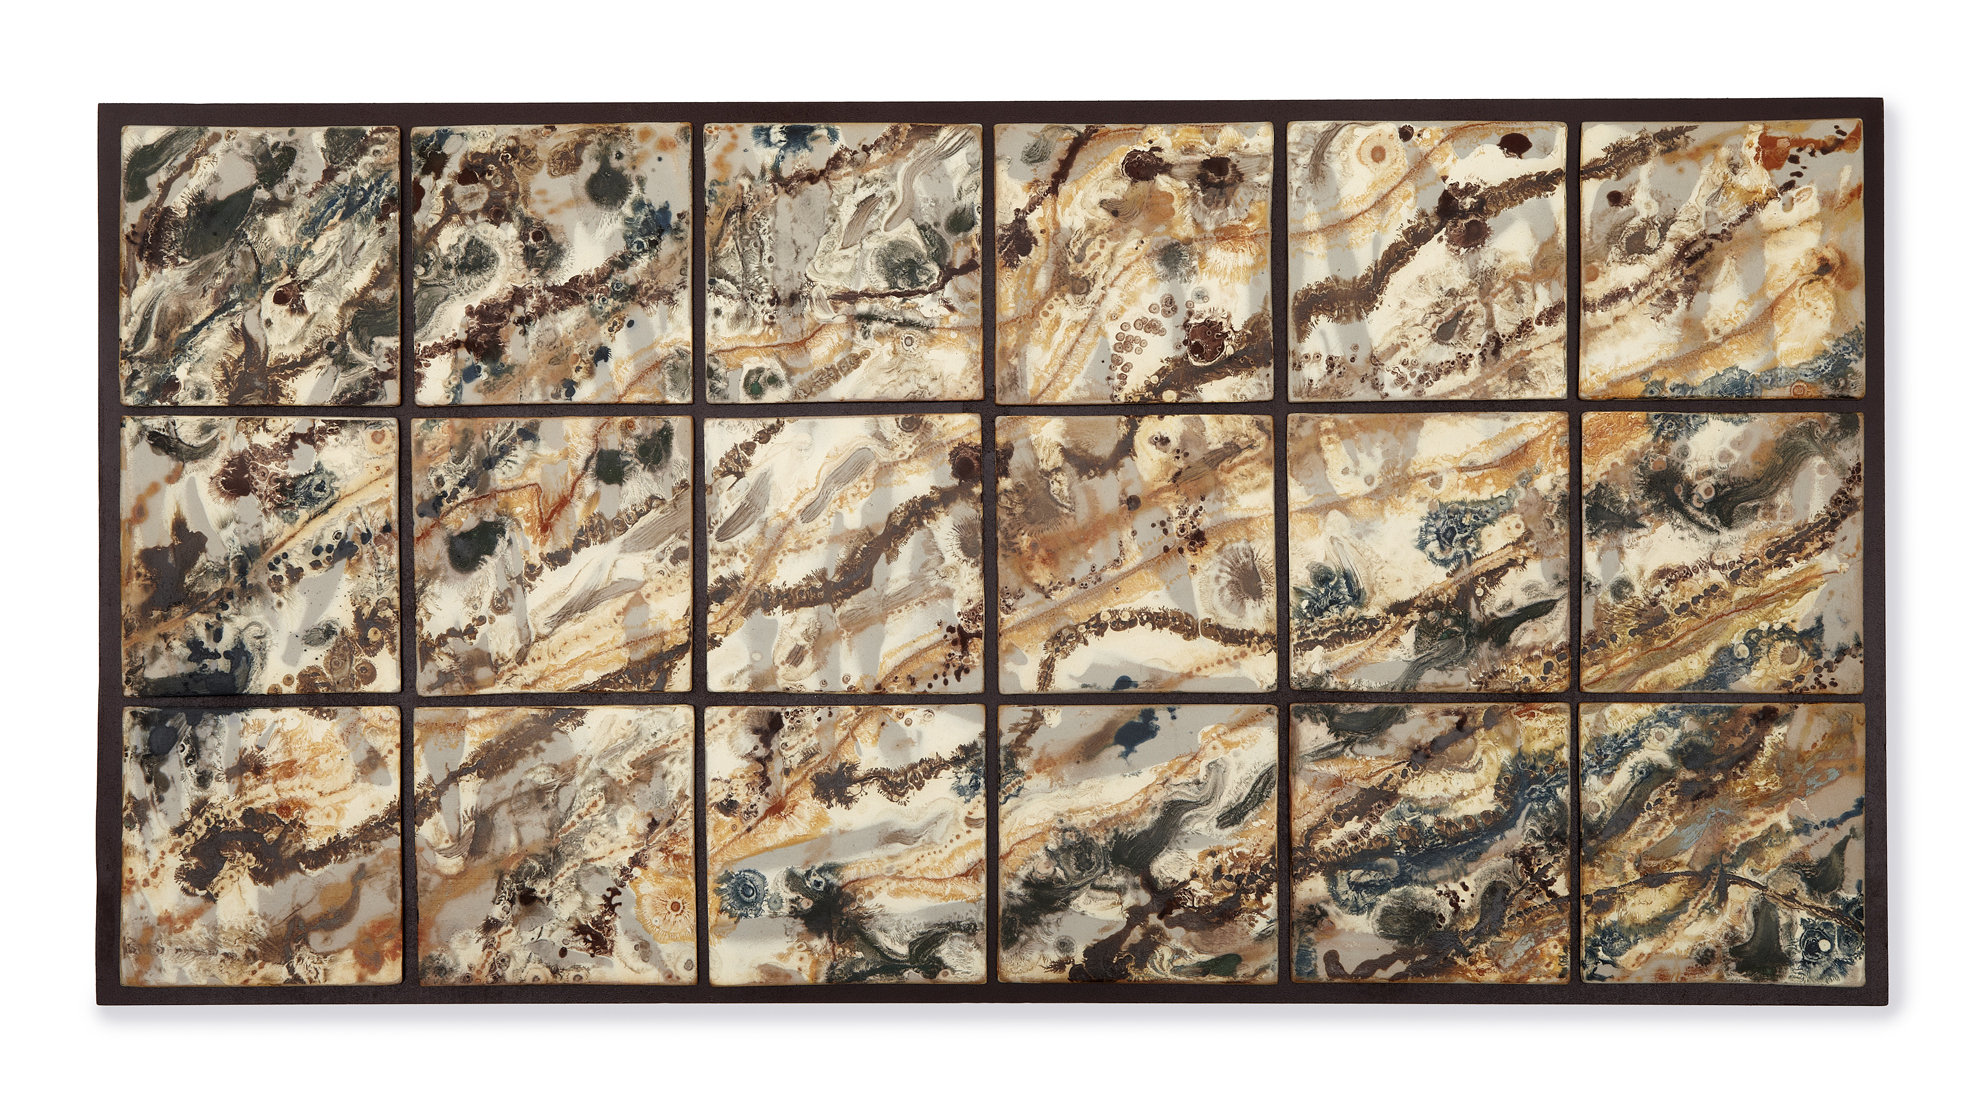 Rock Face Tile Wall By Kristi Sloniger Ceramic Wall Sculpture Artful Home